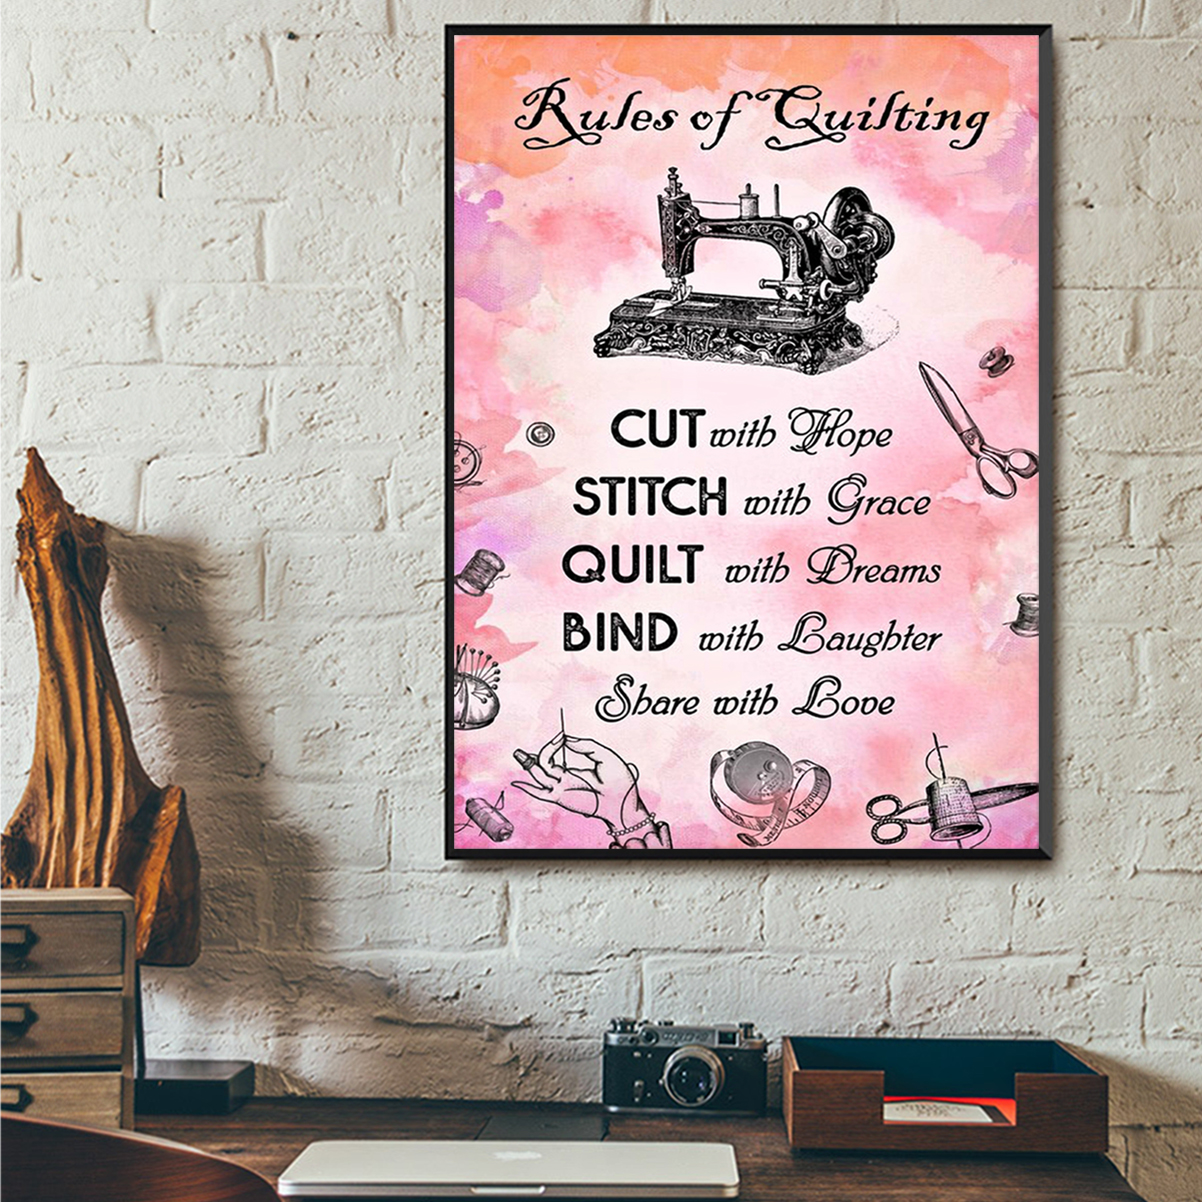 Sewing rules of quilting poster A1